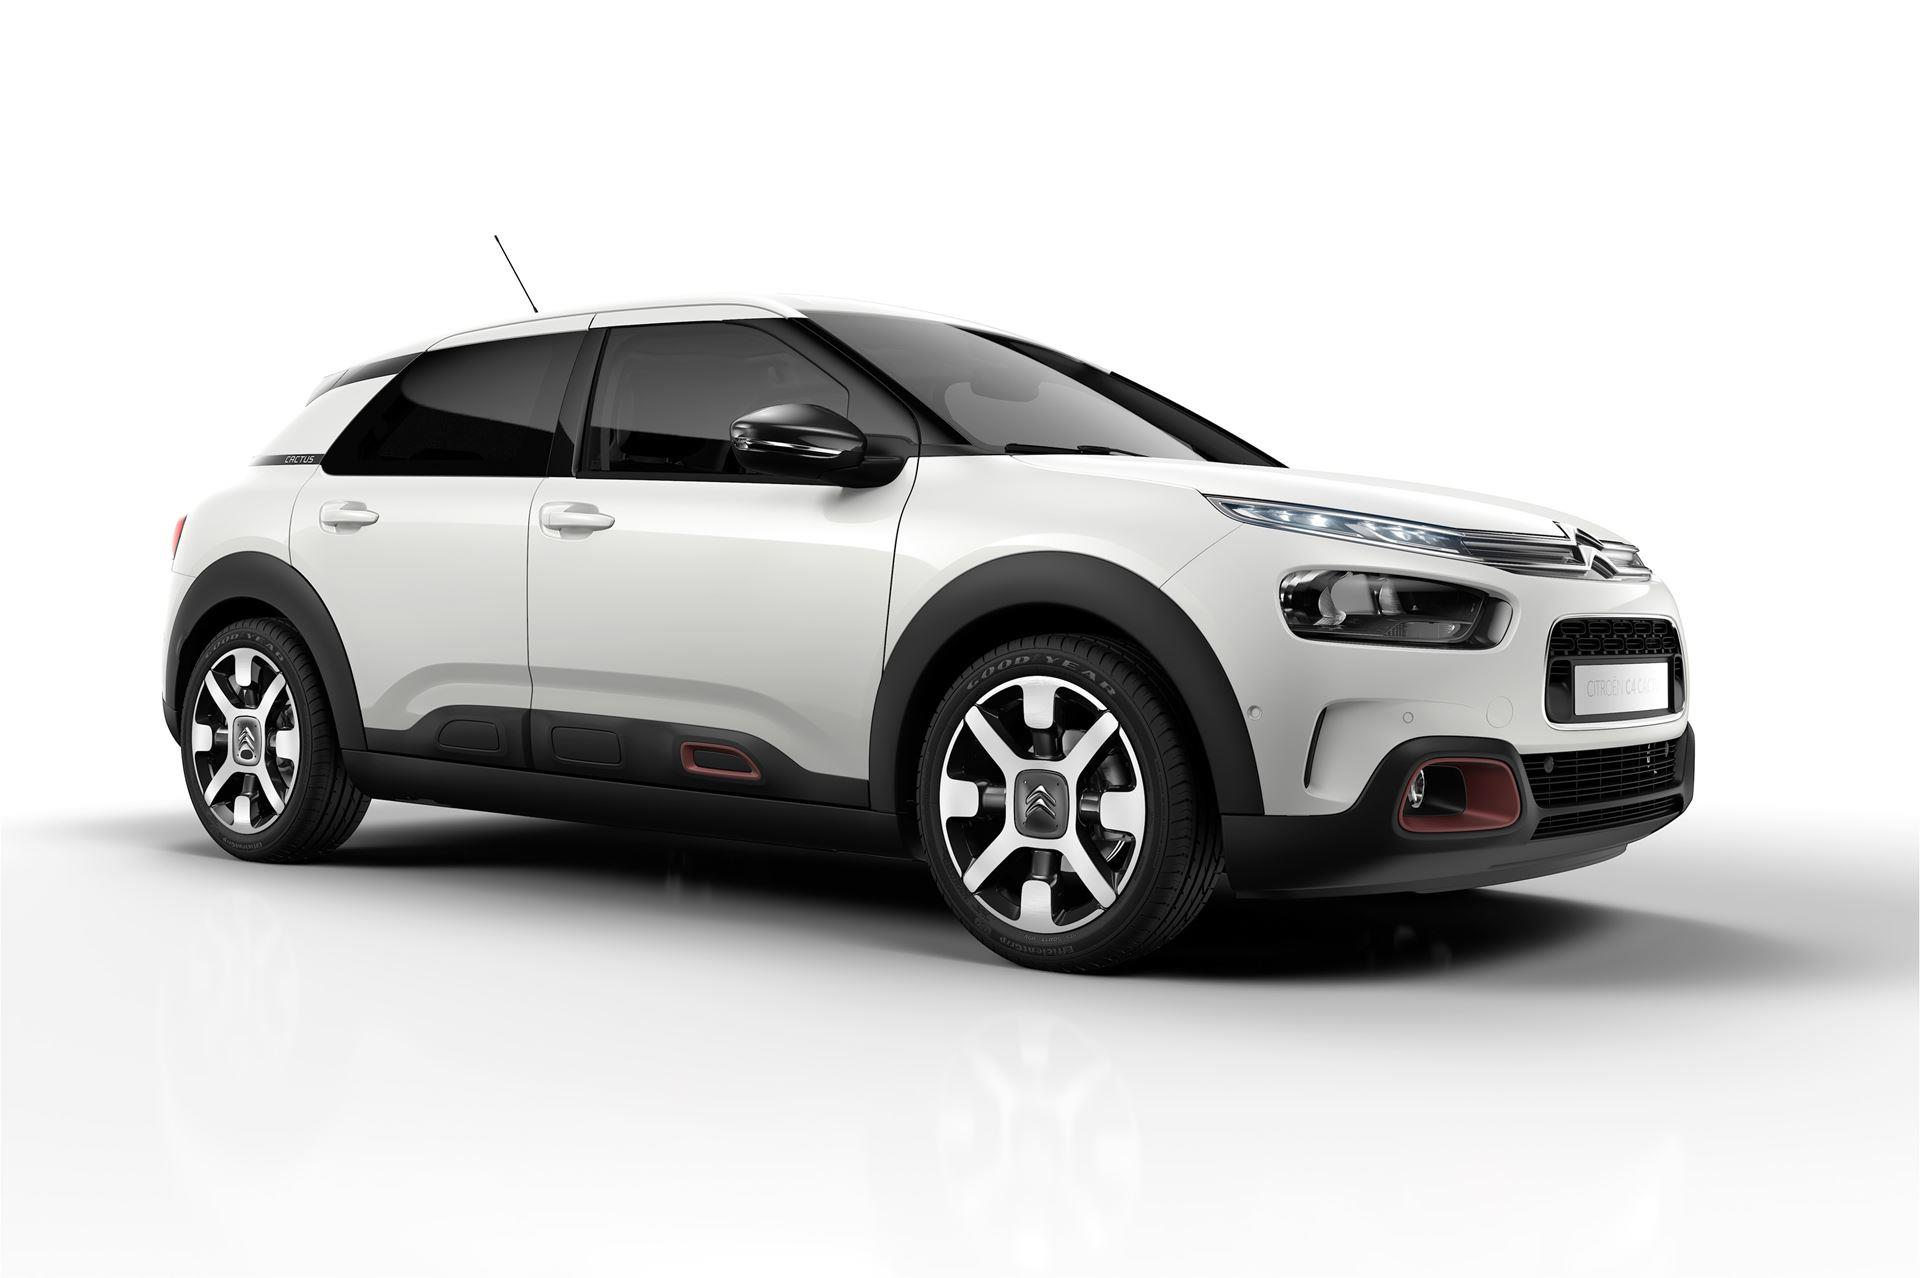 Citroen C4 Cactus Hatch 1.2 PureTech 82 Feel Edition 5Dr Manual